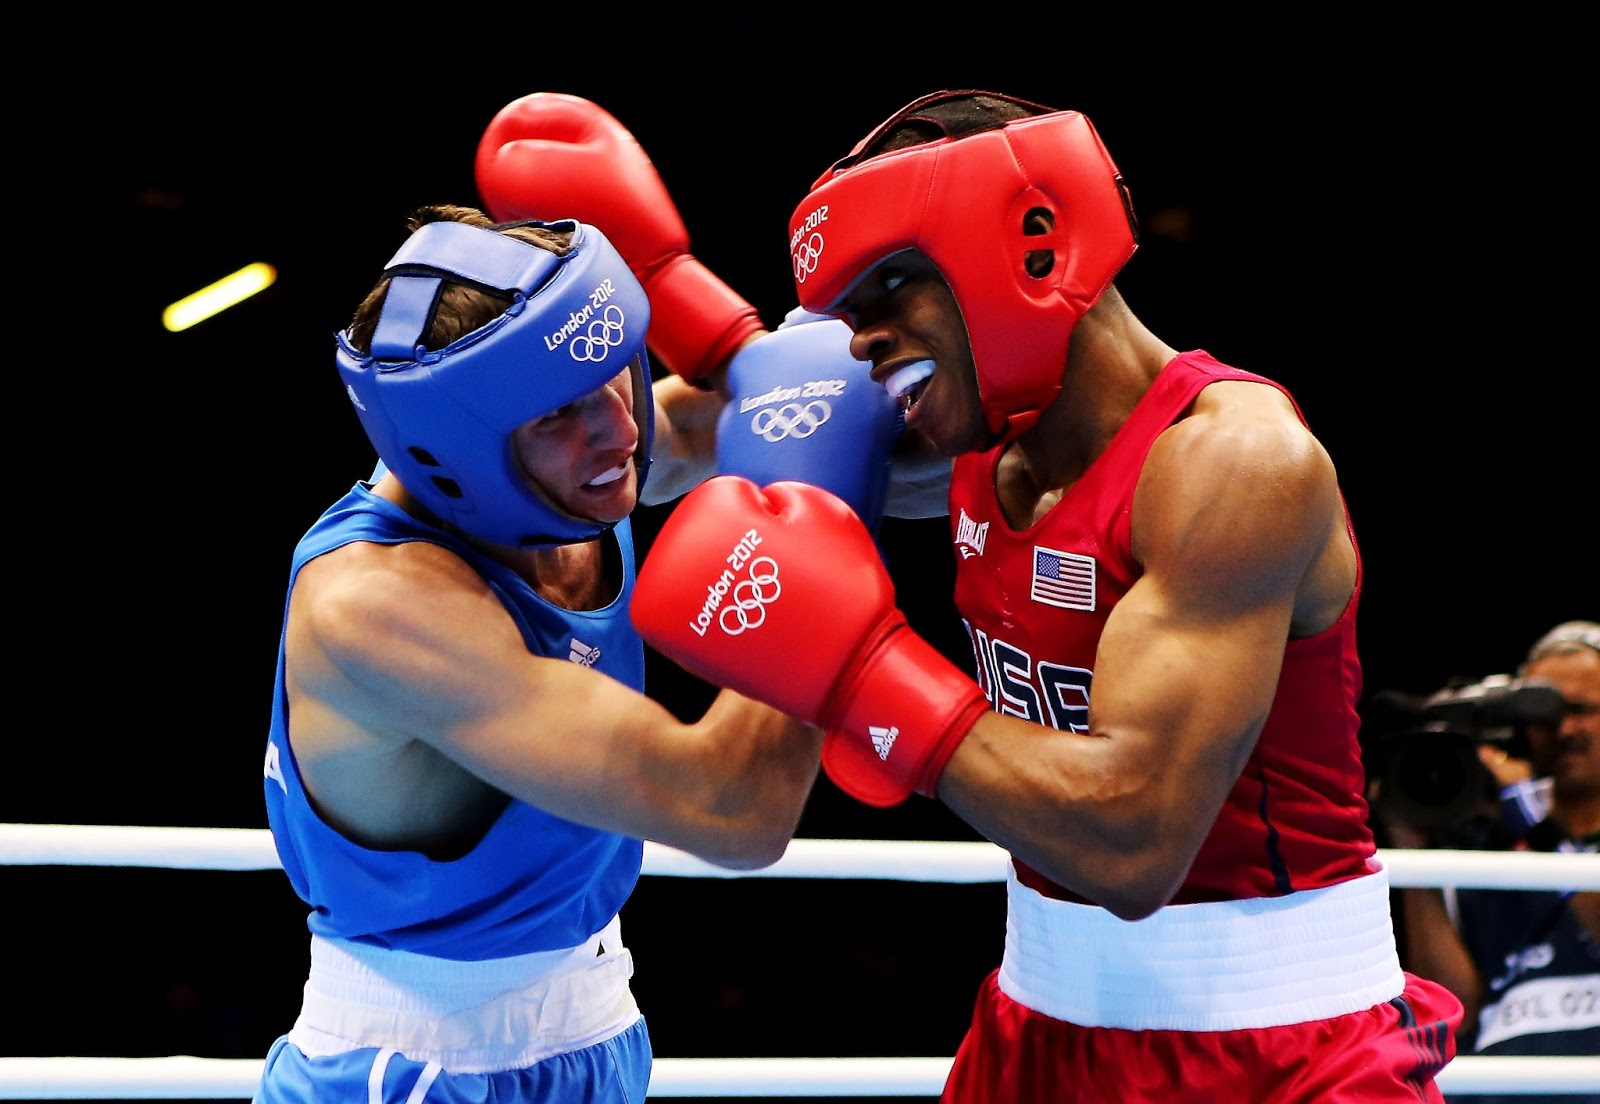 Sport Wallpaper Boxing: 500 Collection HD Wallpaper